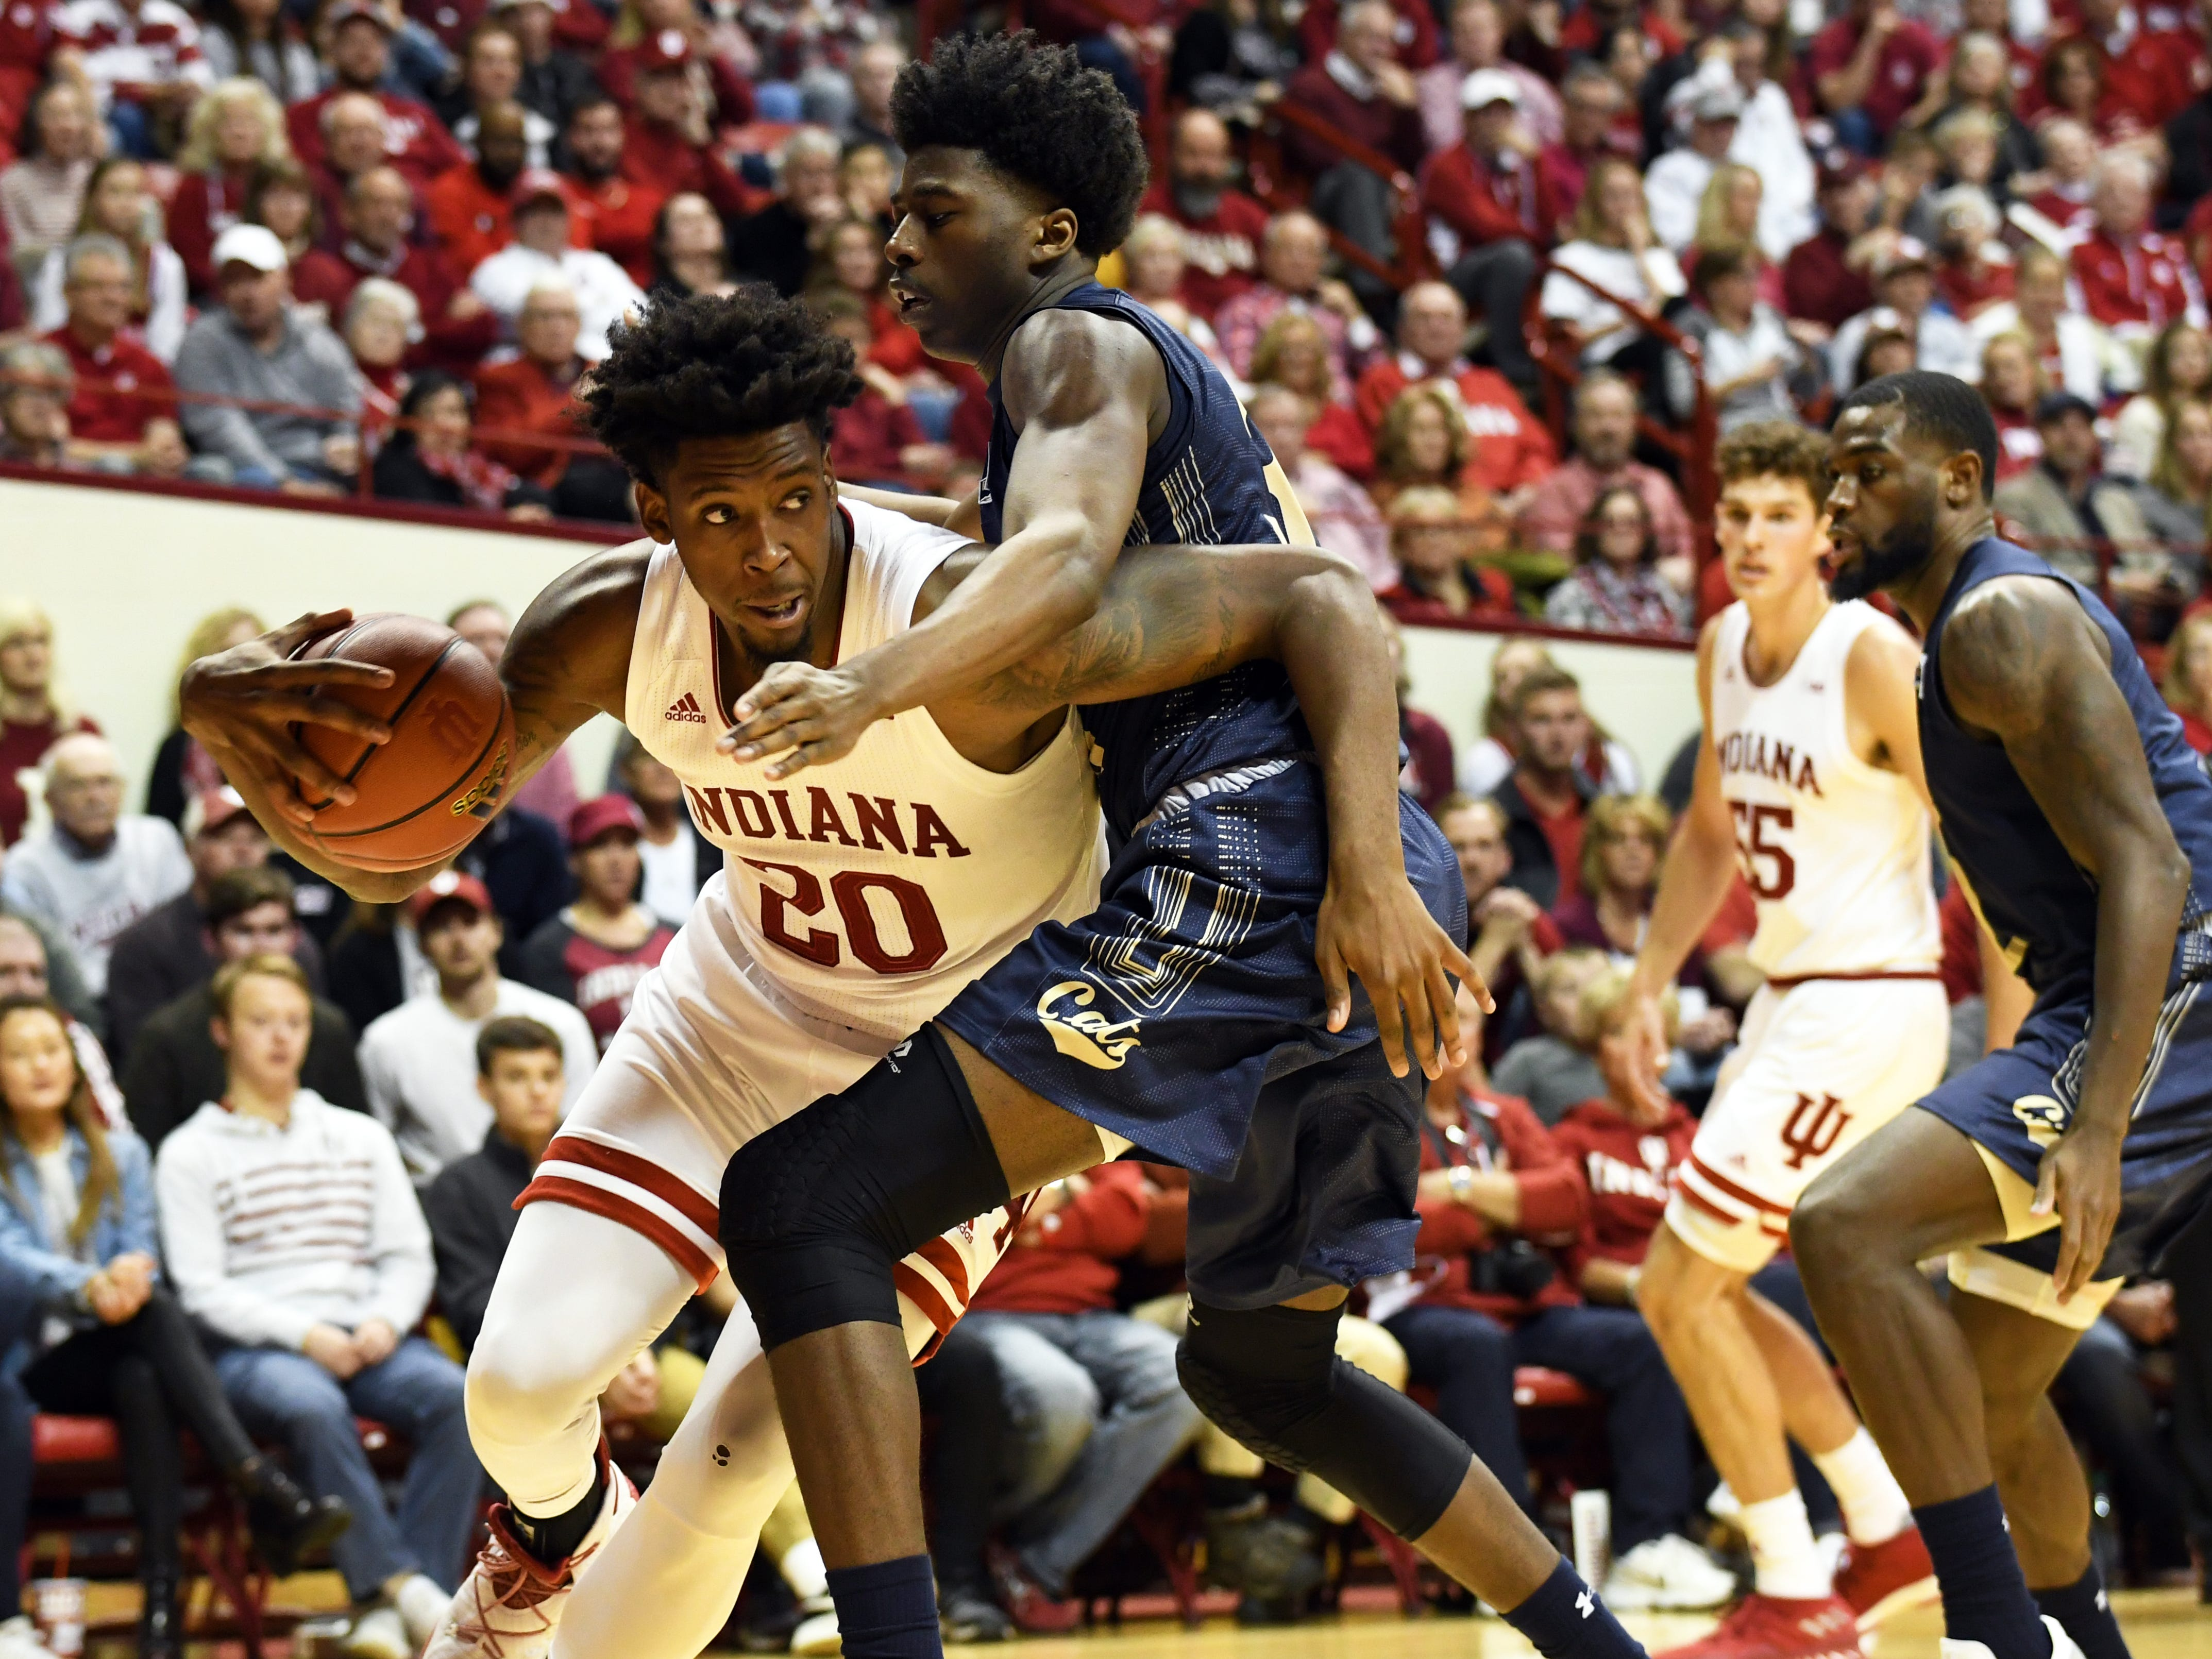 Indiana Hoosiers forward De'Ron Davis (20) dribbles towards the basket during the game against Montana State at Simon Skjodt Assembly Hall in Bloomington, Ind., on Friday, Nov. 9, 2018.